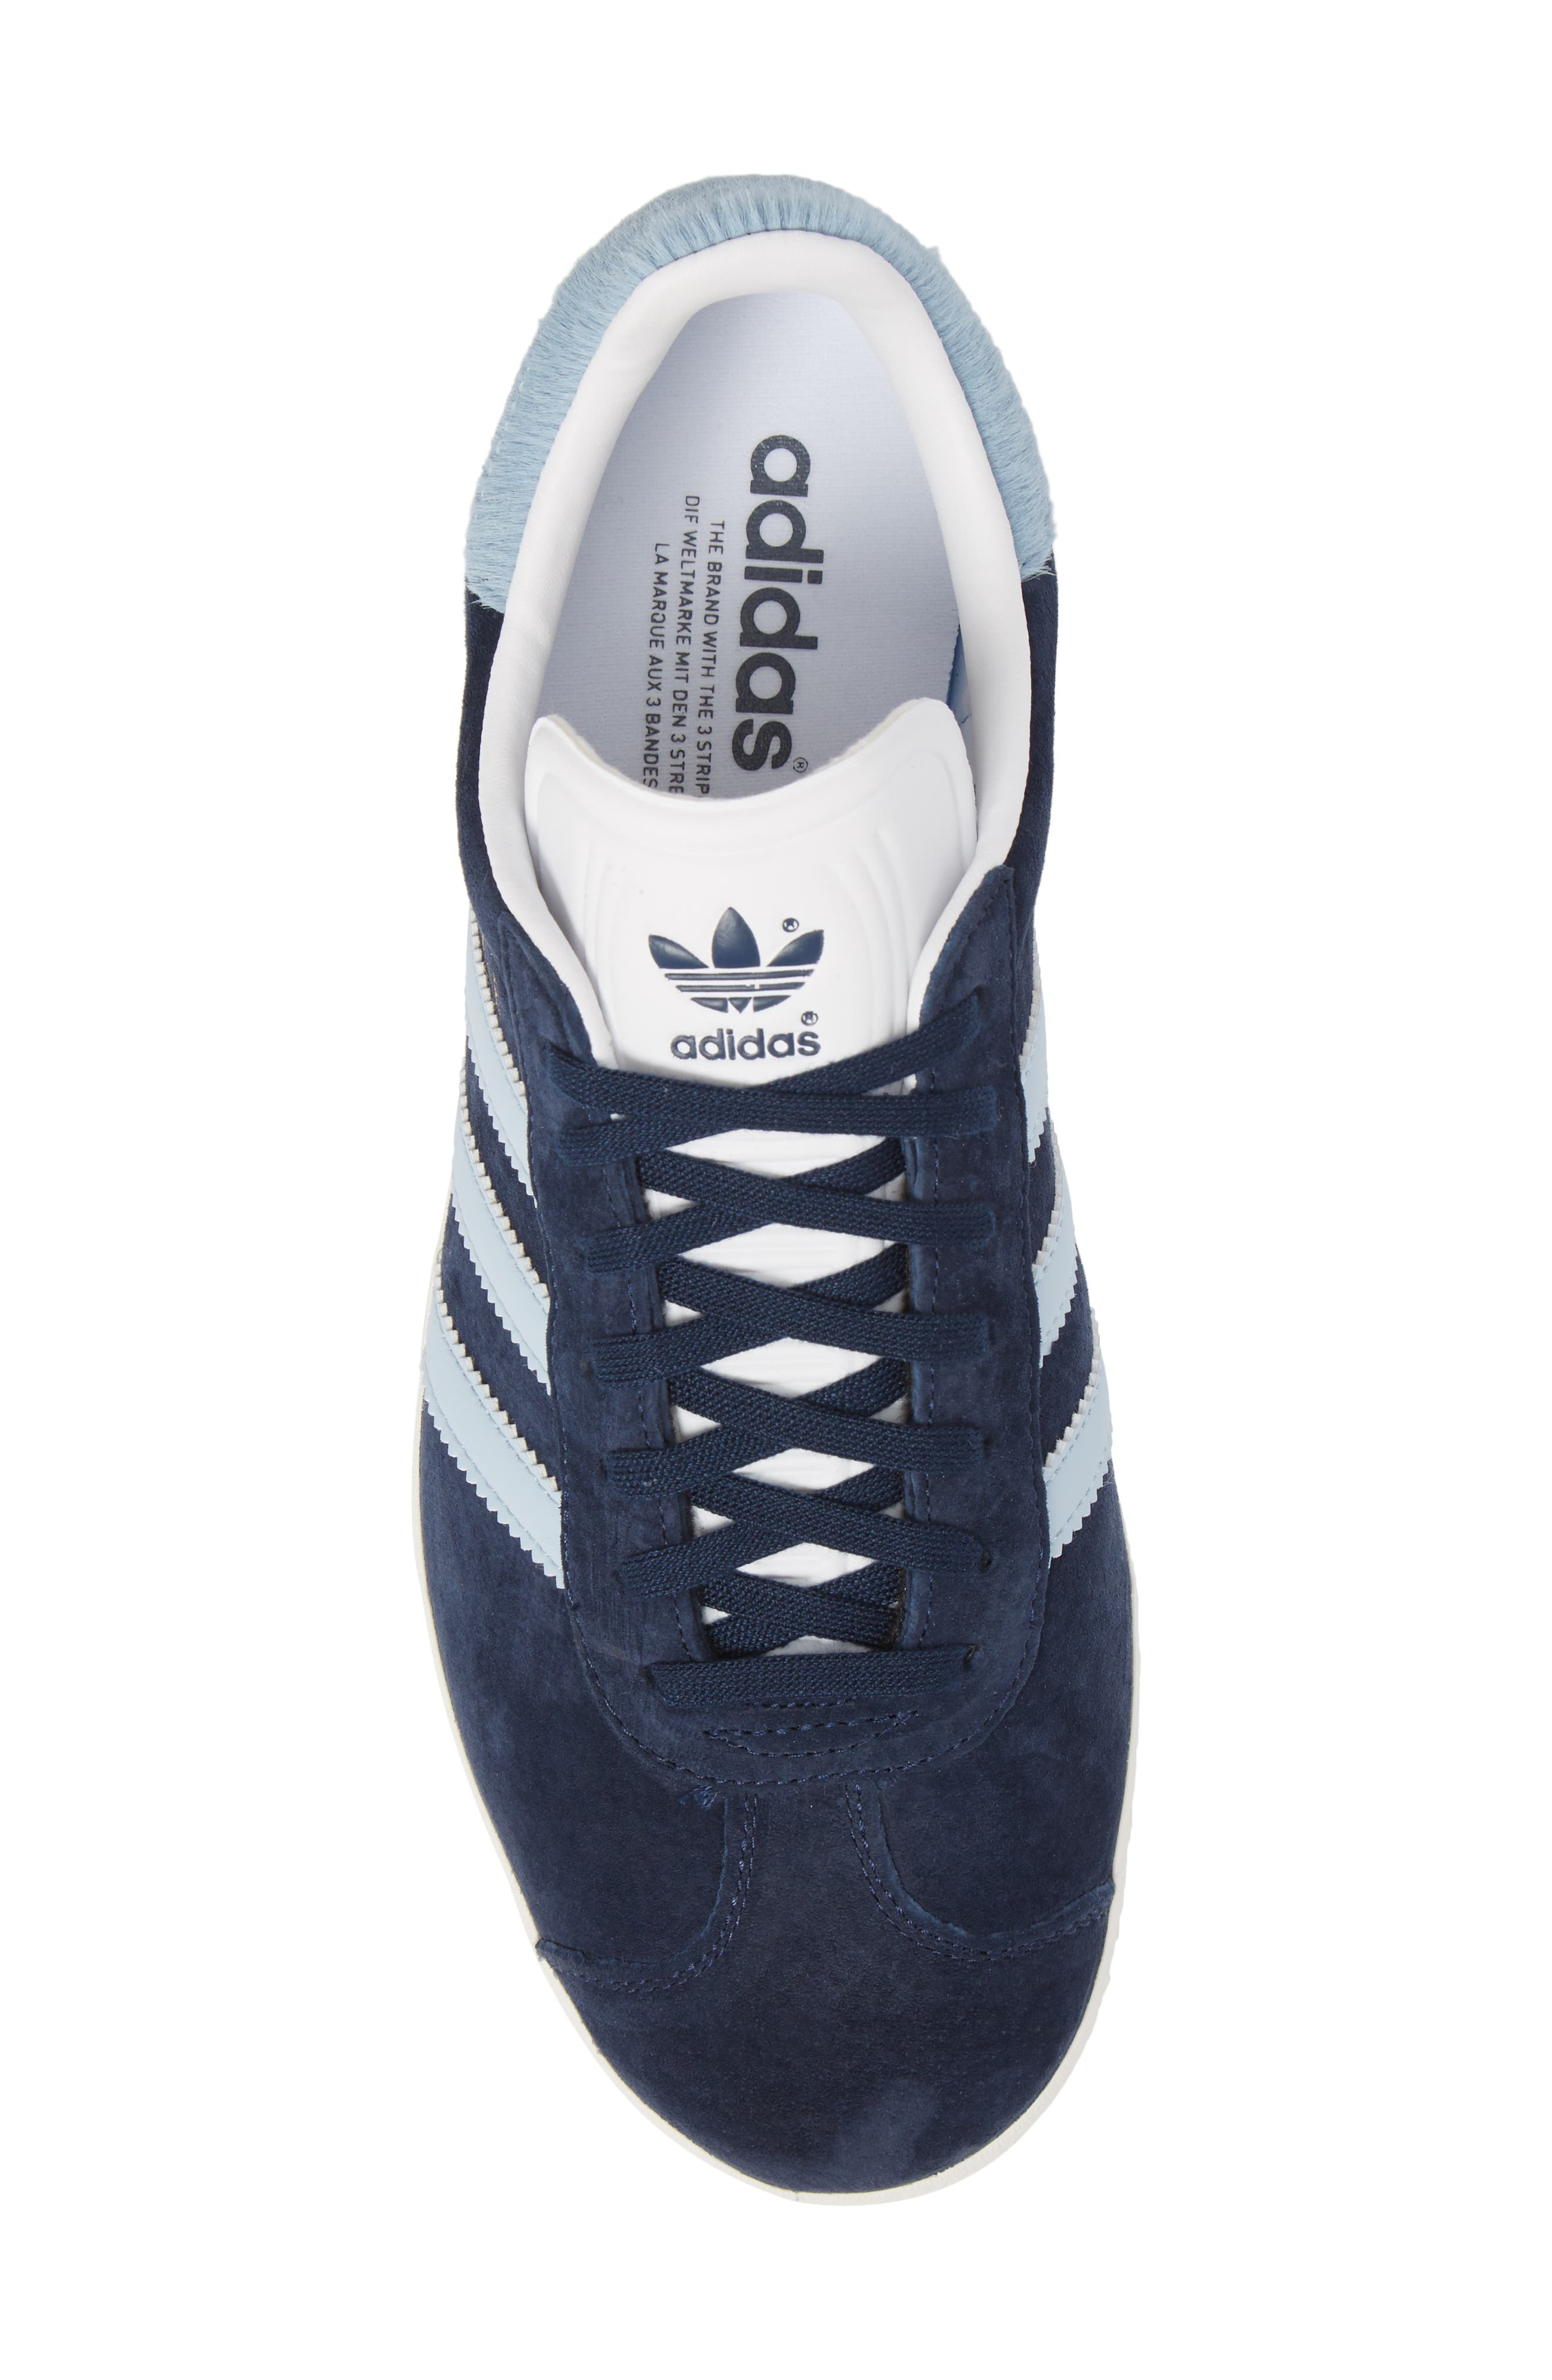 Gazelle Sneaker,                             Alternate thumbnail 5, color,                             Navy/ Easy Blue/ White